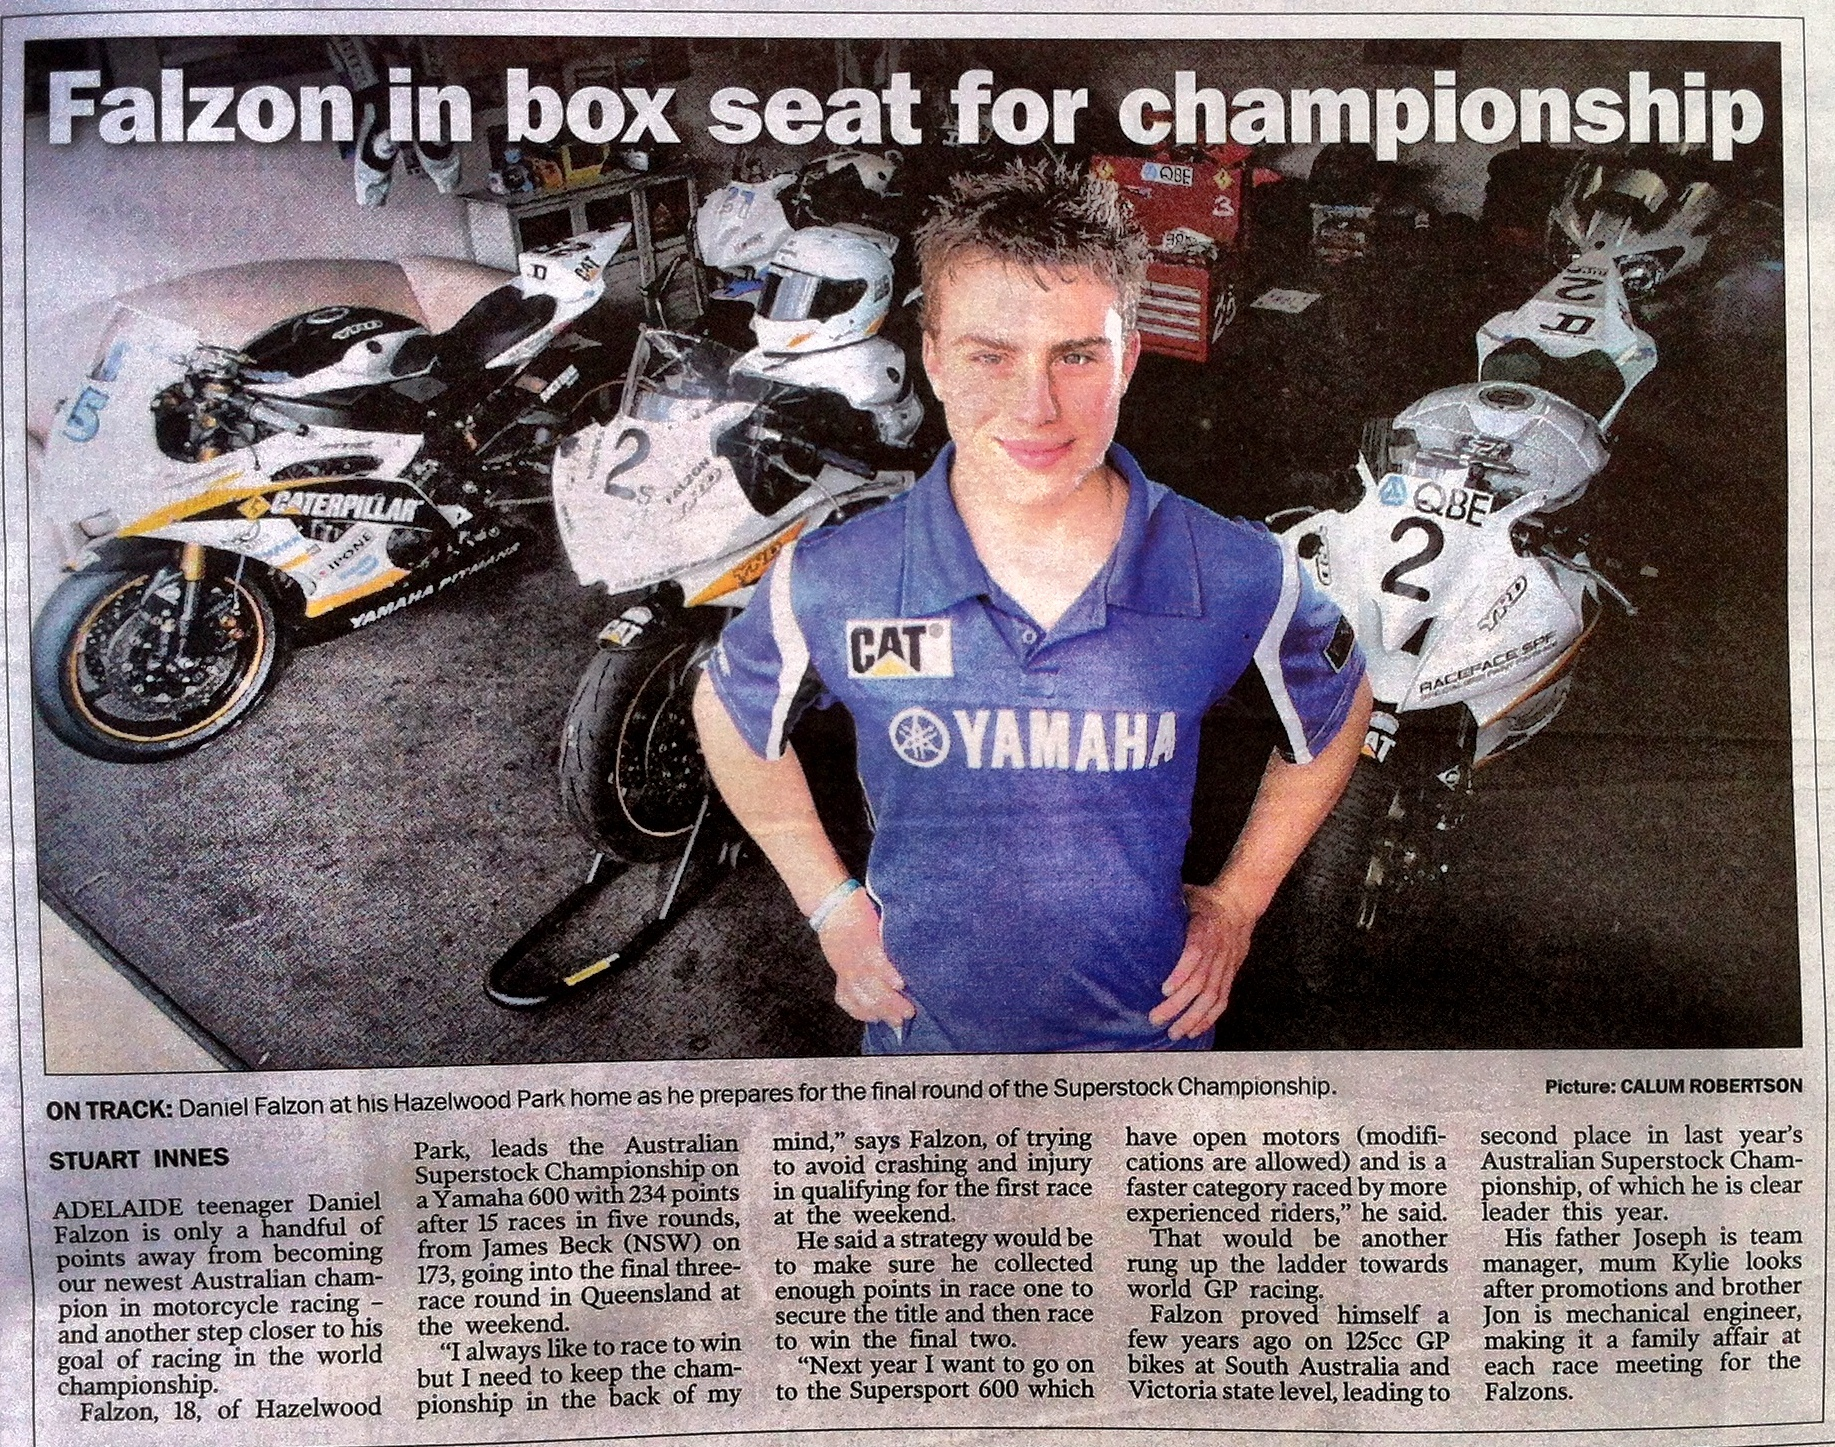 2012-09-09 Sunday Mail